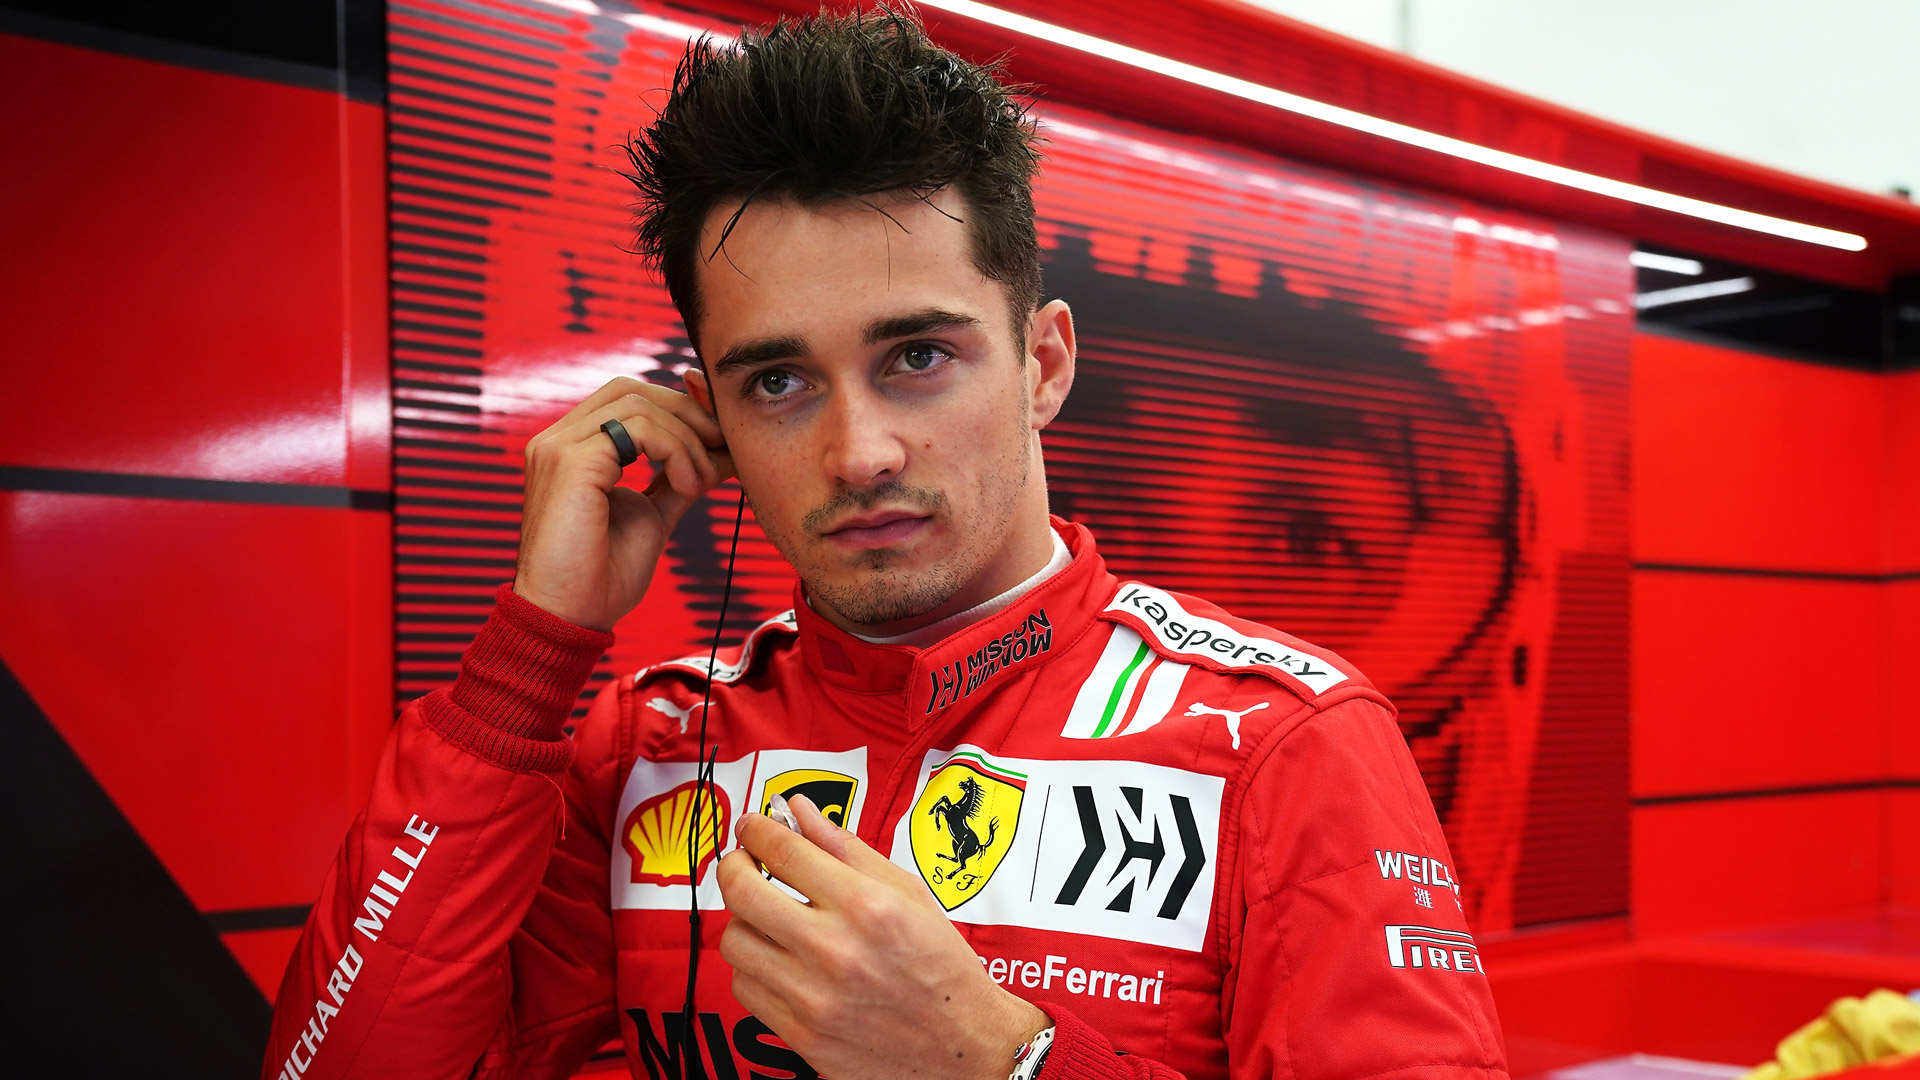 'In the cockpit he becomes a tiger' - David Tremayne on why Monaco underlined Leclerc's Villeneuve-like qualities | Formula 1®